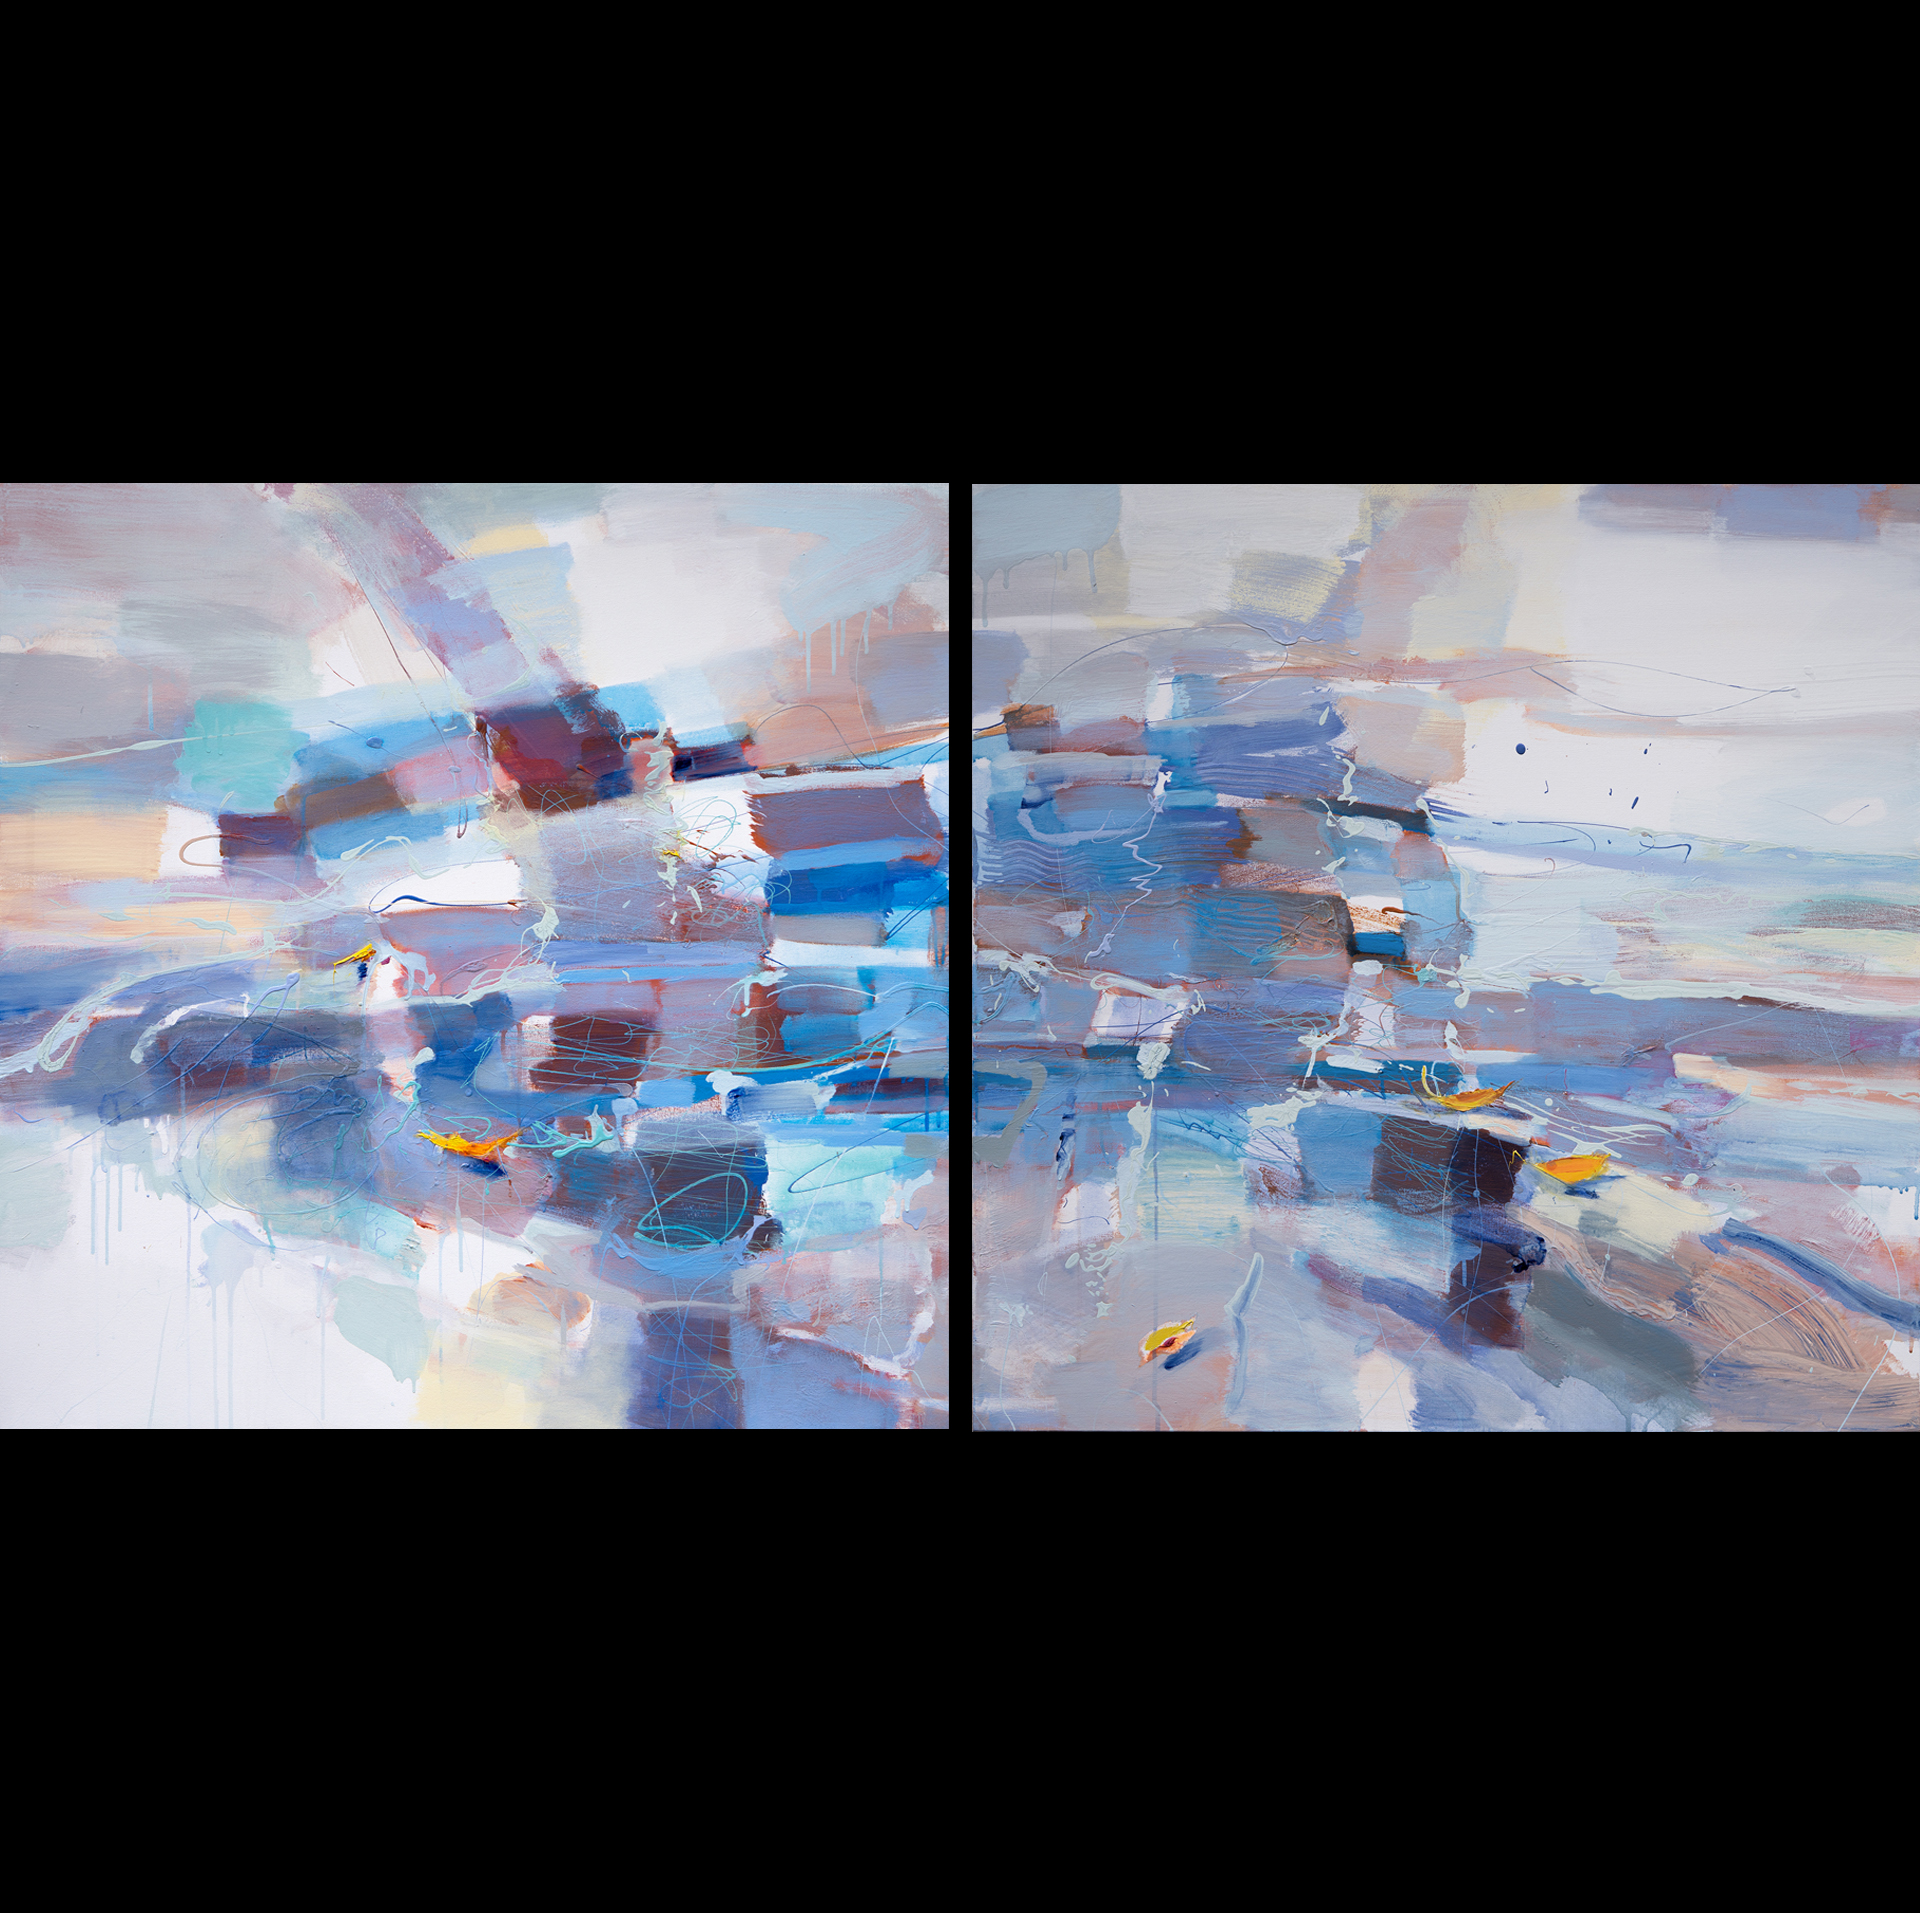 EBB & FLOW acrylic on canvas diptych 36x72 $2400